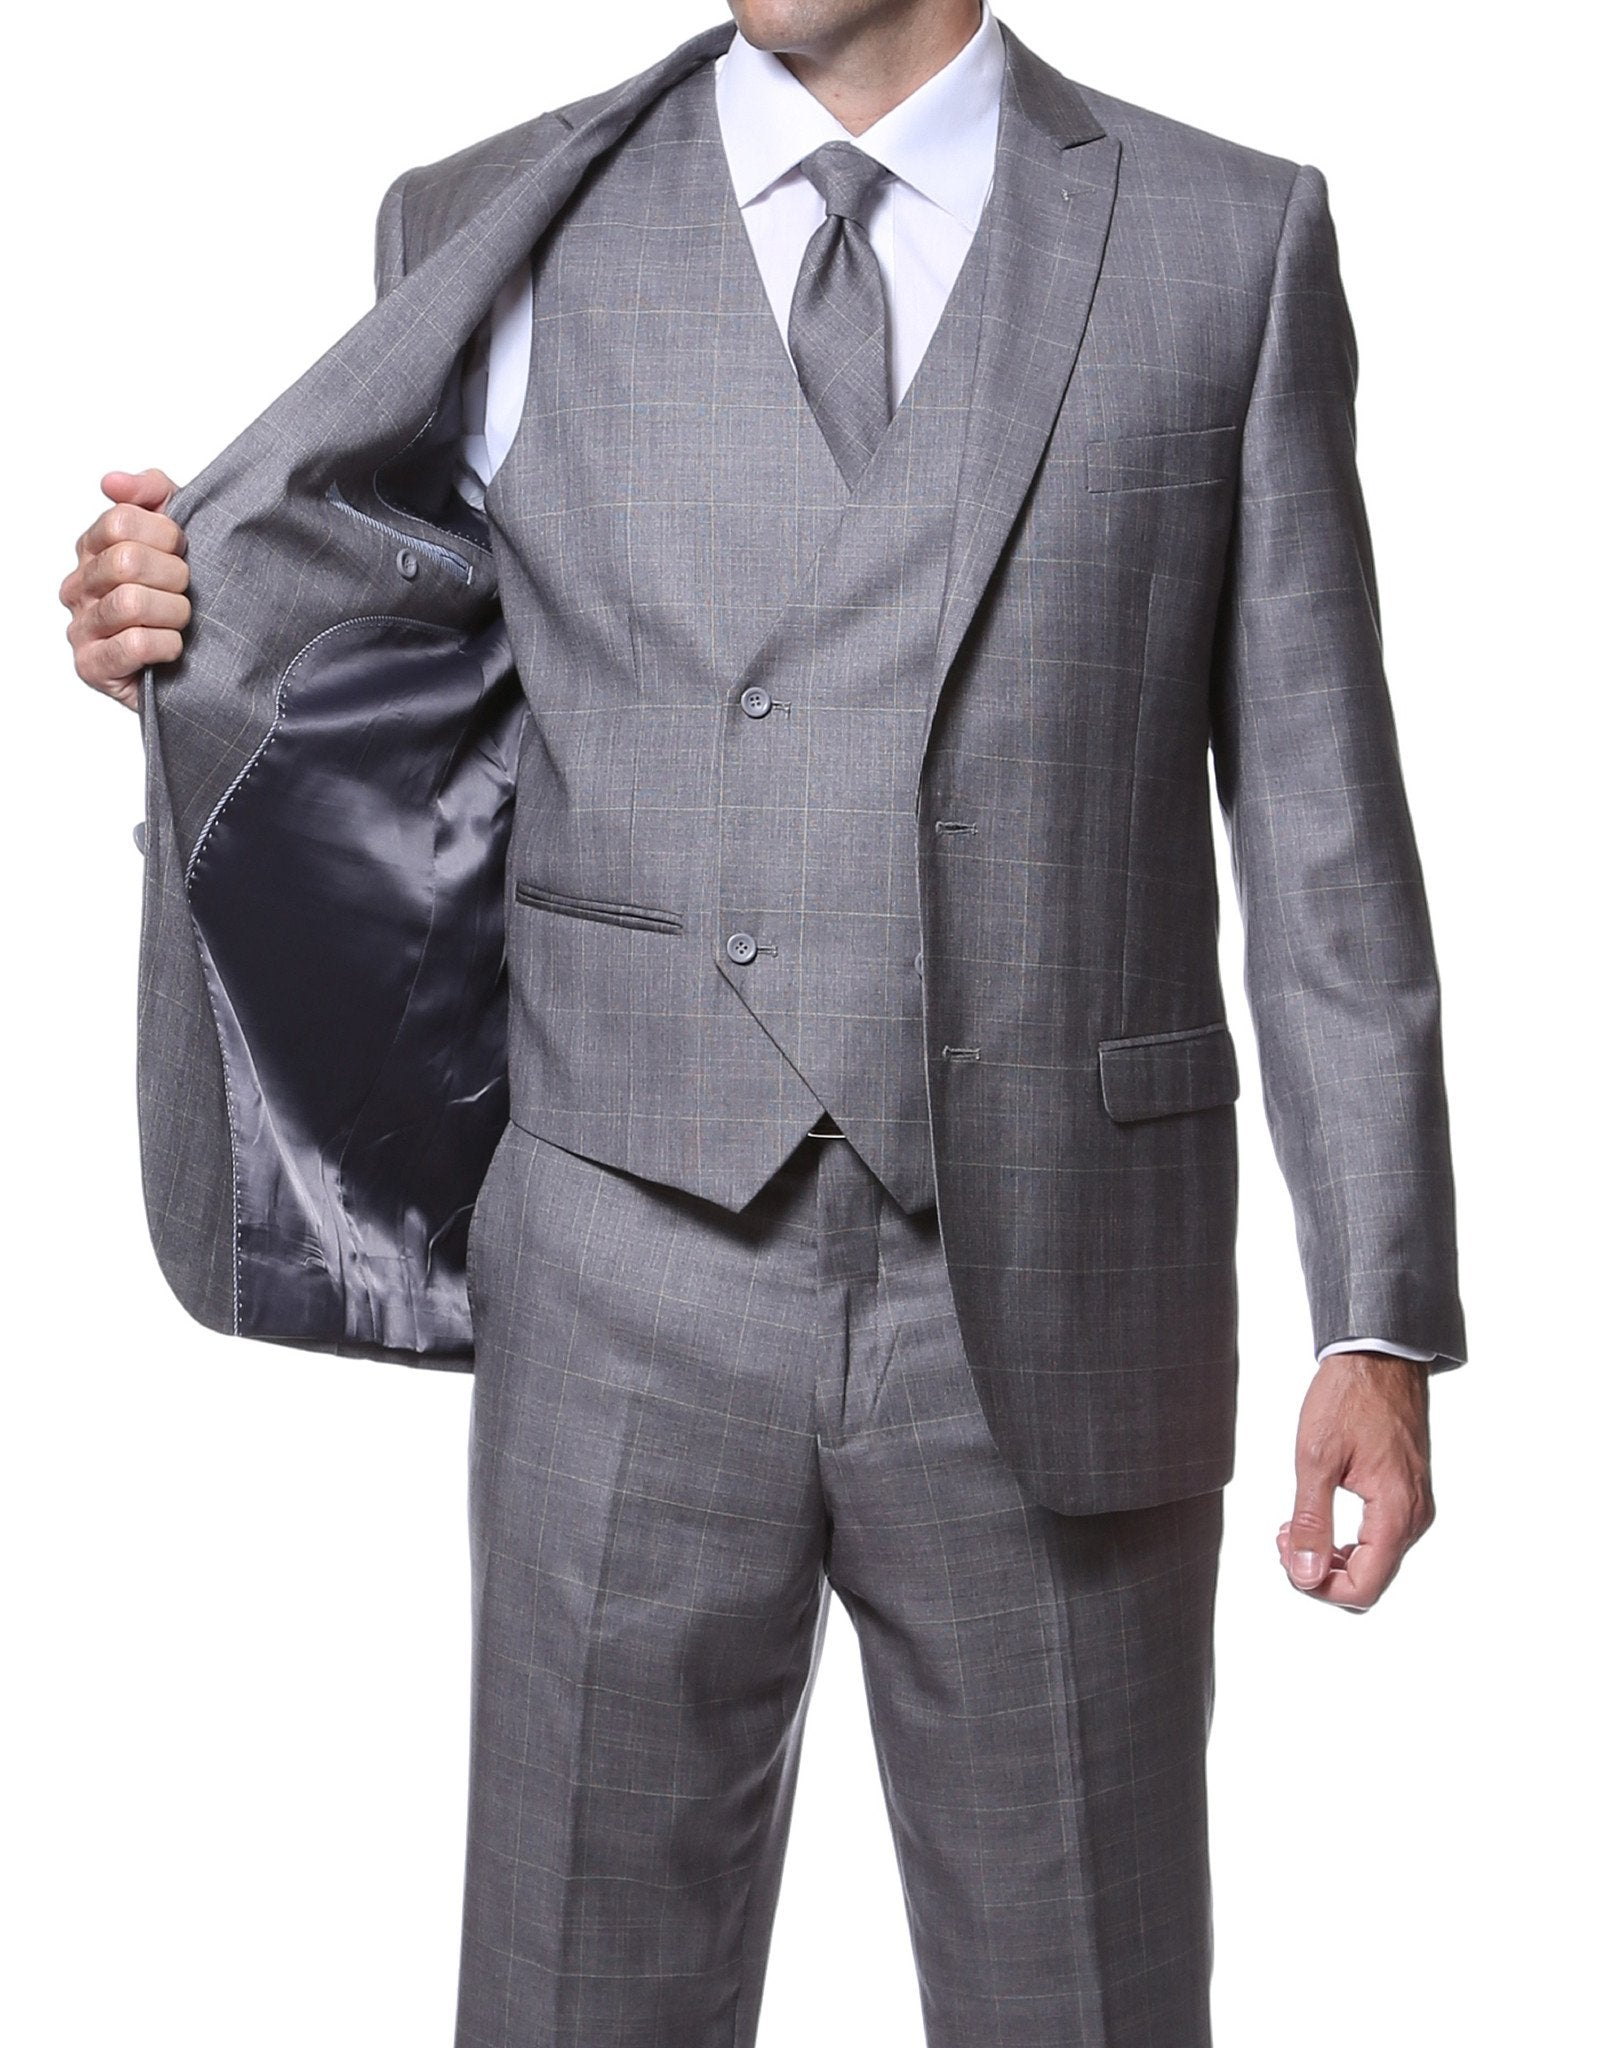 Zillo Grey 3pc Vested Slim Fit Plaid Suit - Giorgio's Menswear